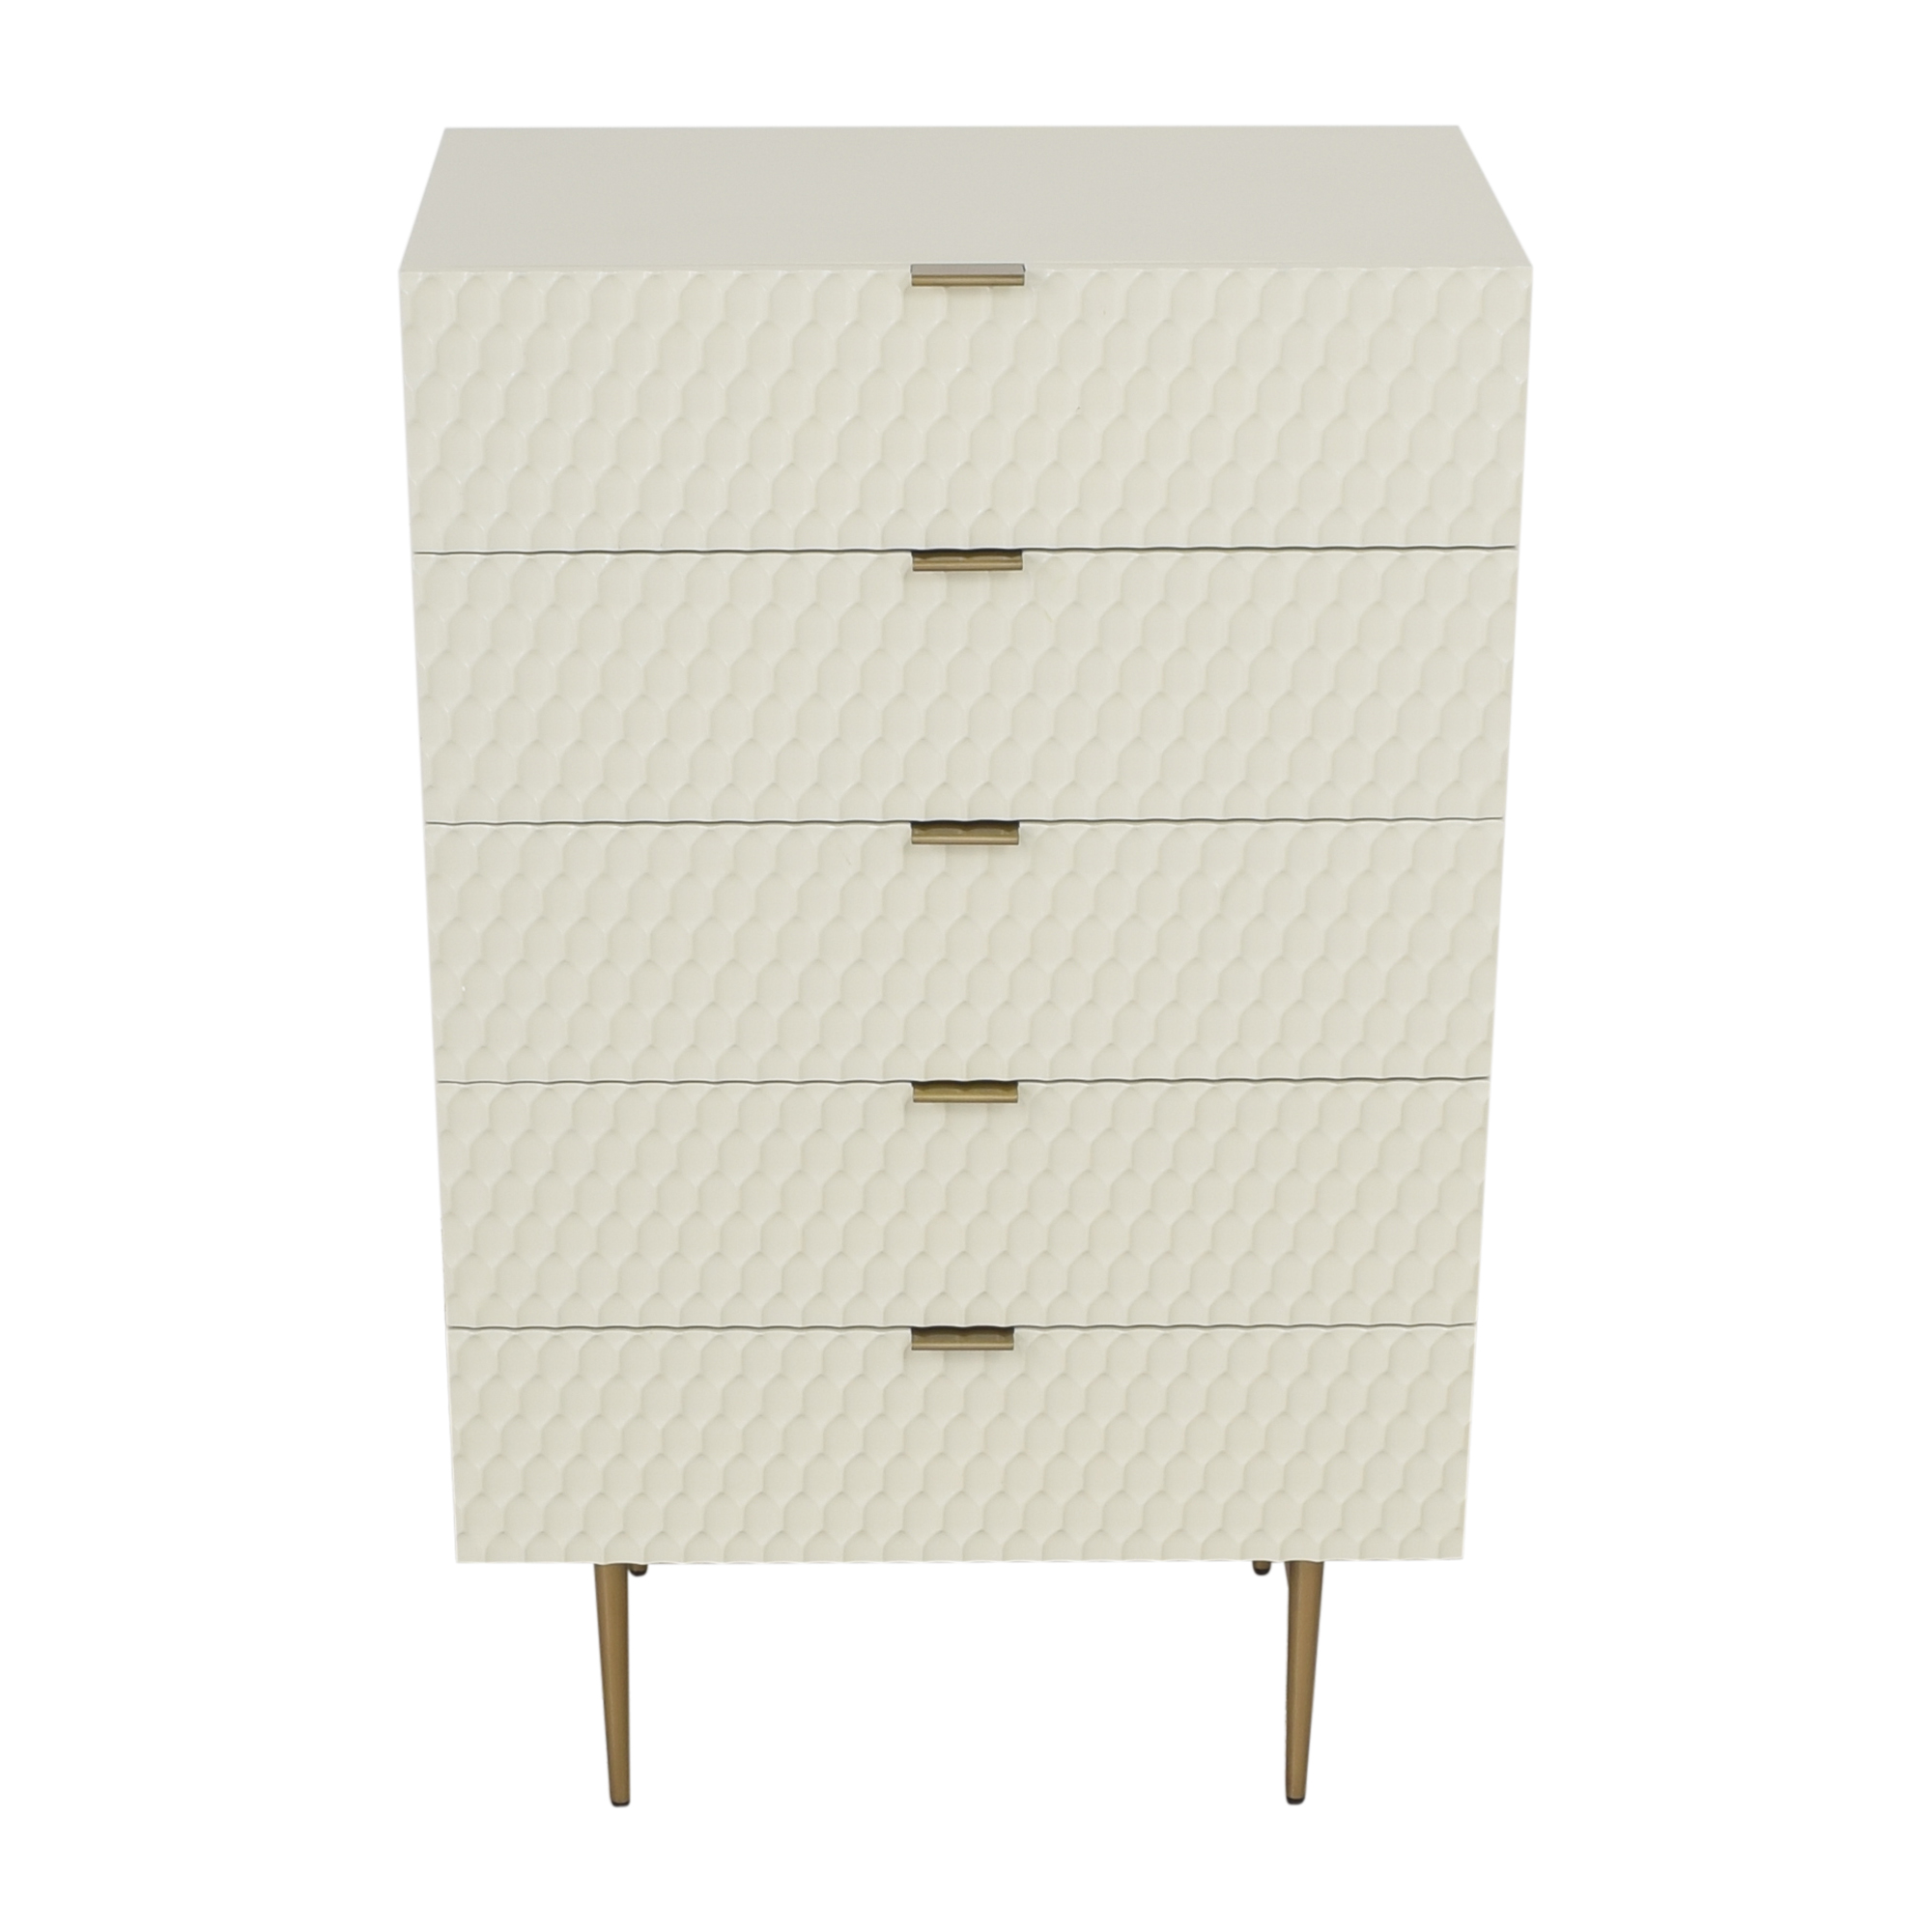 West Elm Audrey Five Drawer Dresser / Storage